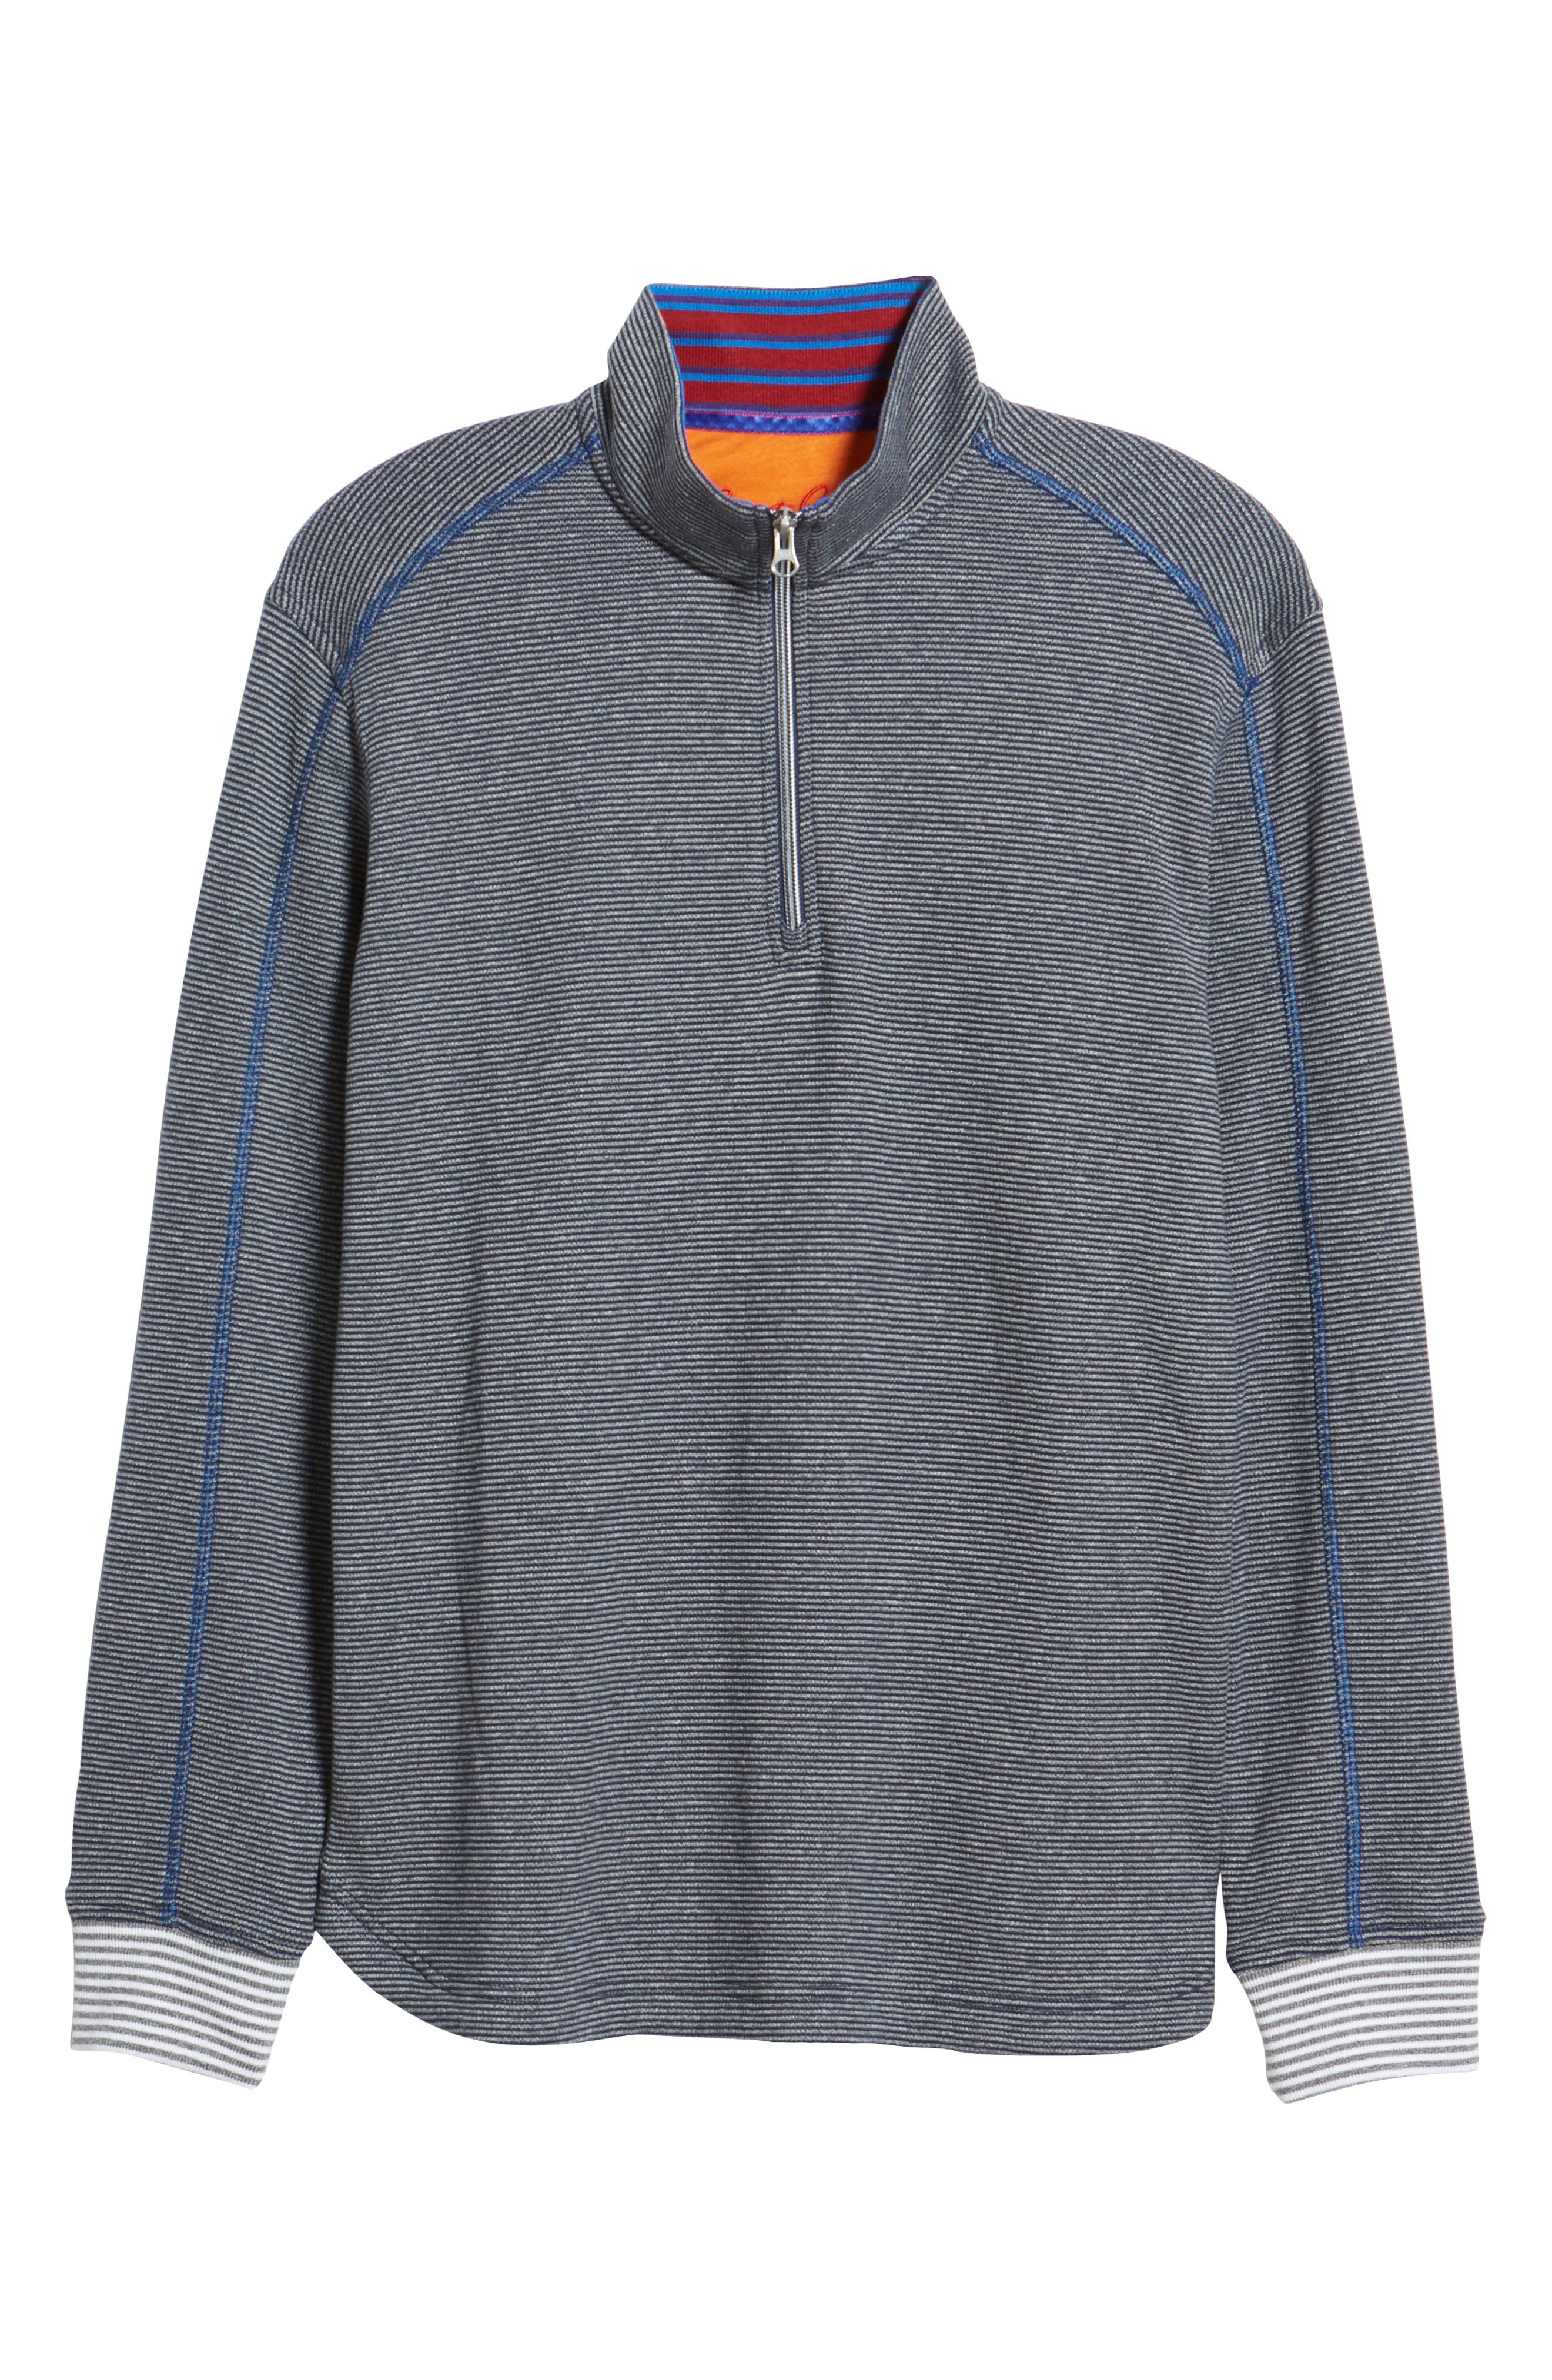 Kitson Classic Fit Stripe Quarter Zip Sweater,                             Alternate thumbnail 6, color,                             HEATHER NAVY